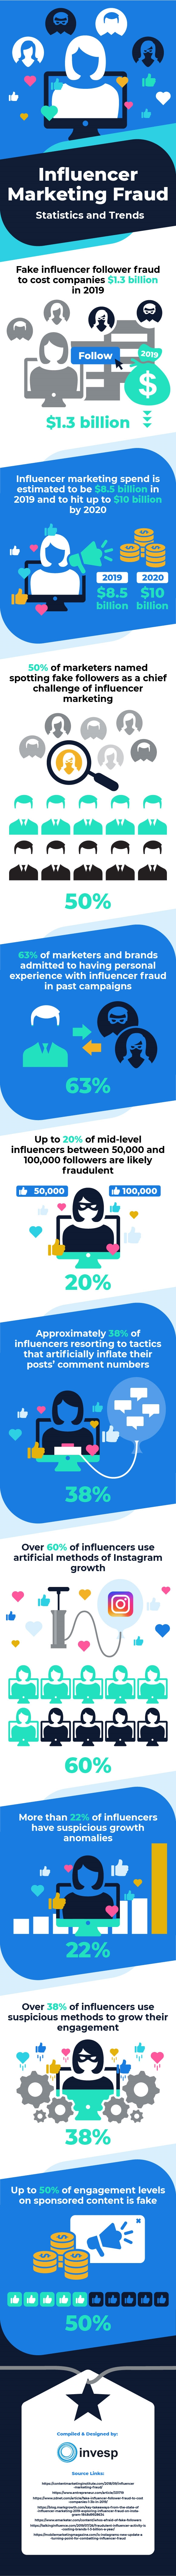 How Influencer Marketing Fraud Could Cost Your Business [Infographic]